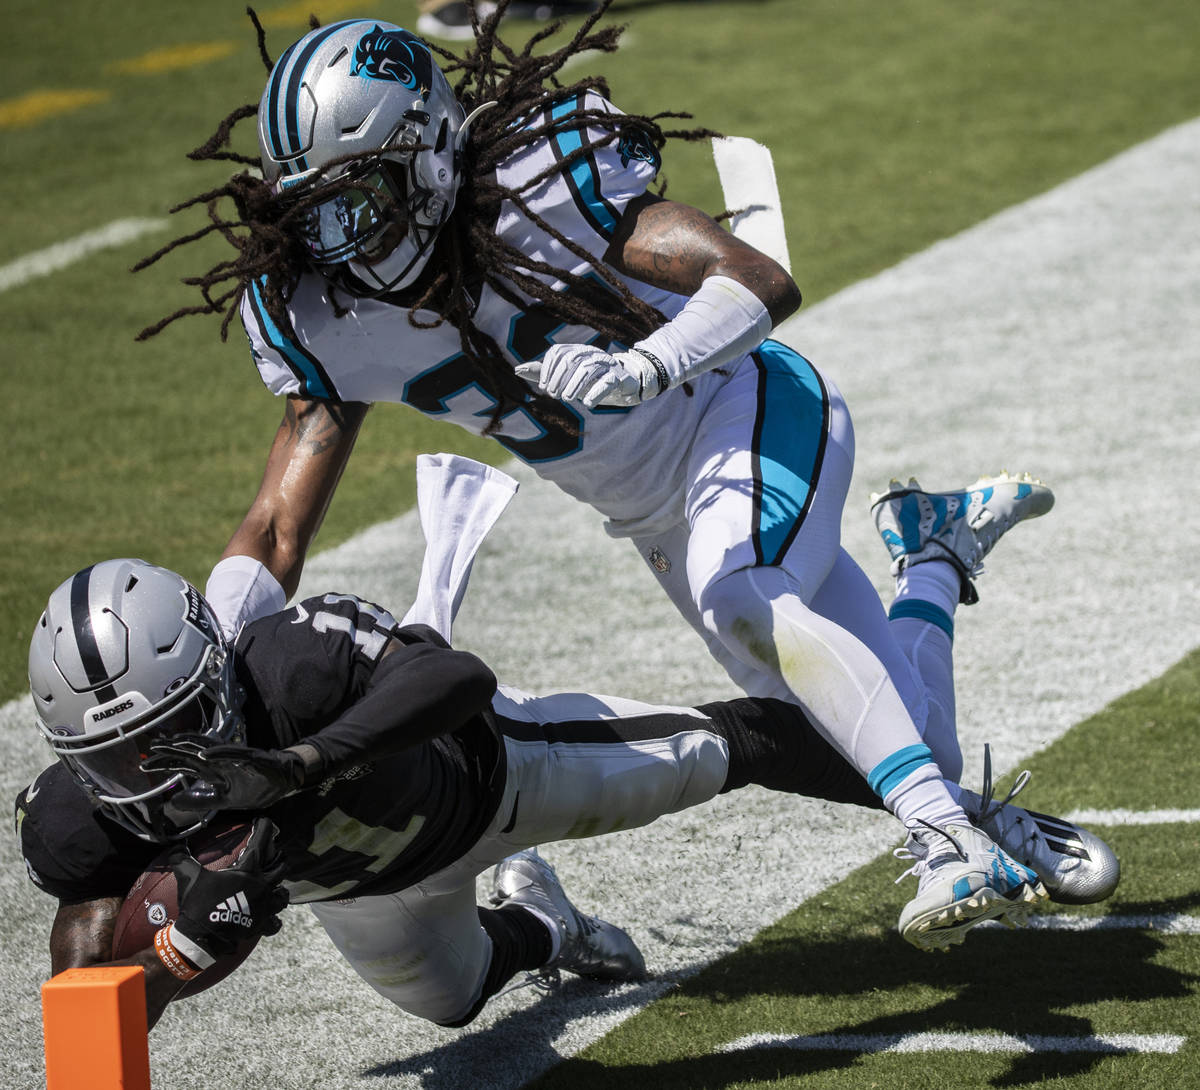 Las Vegas Raiders wide receiver Henry Ruggs III (11) collides with Carolina Panthers safety Tre ...